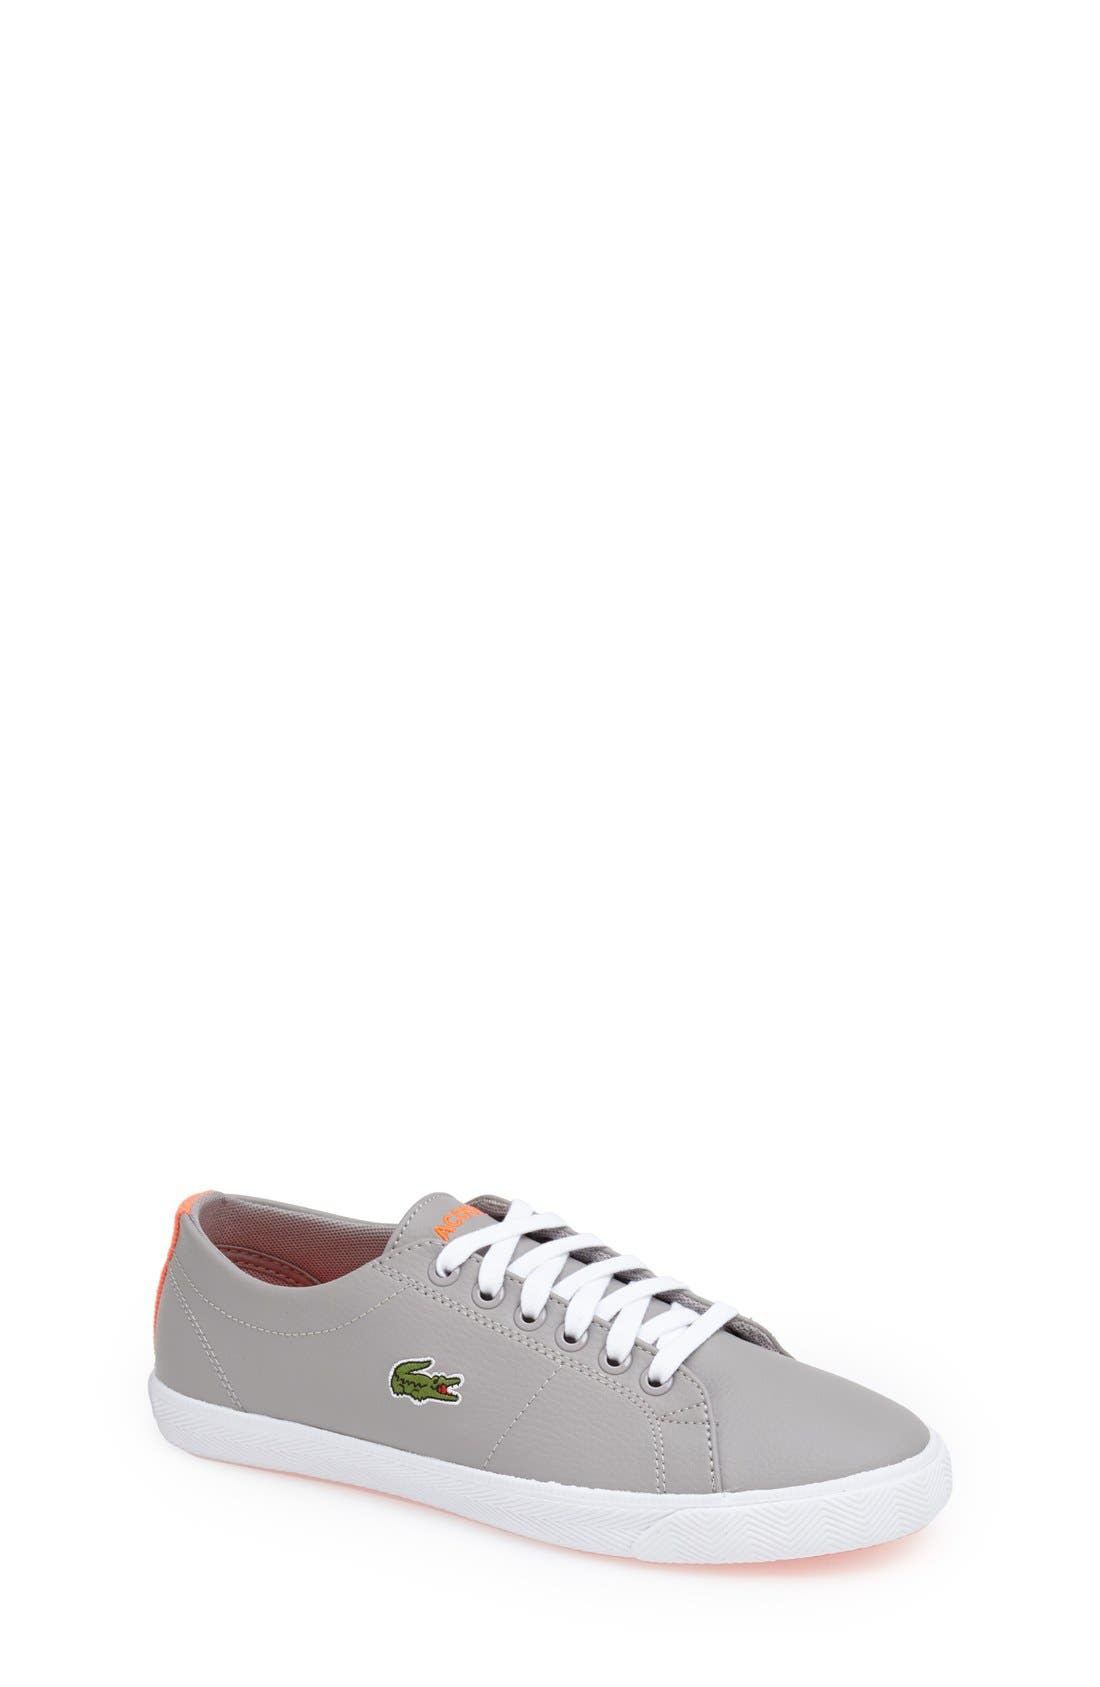 Main Image - Lacoste 'Marcel' Sneaker (Toddler, Little Kid & Big Kid)